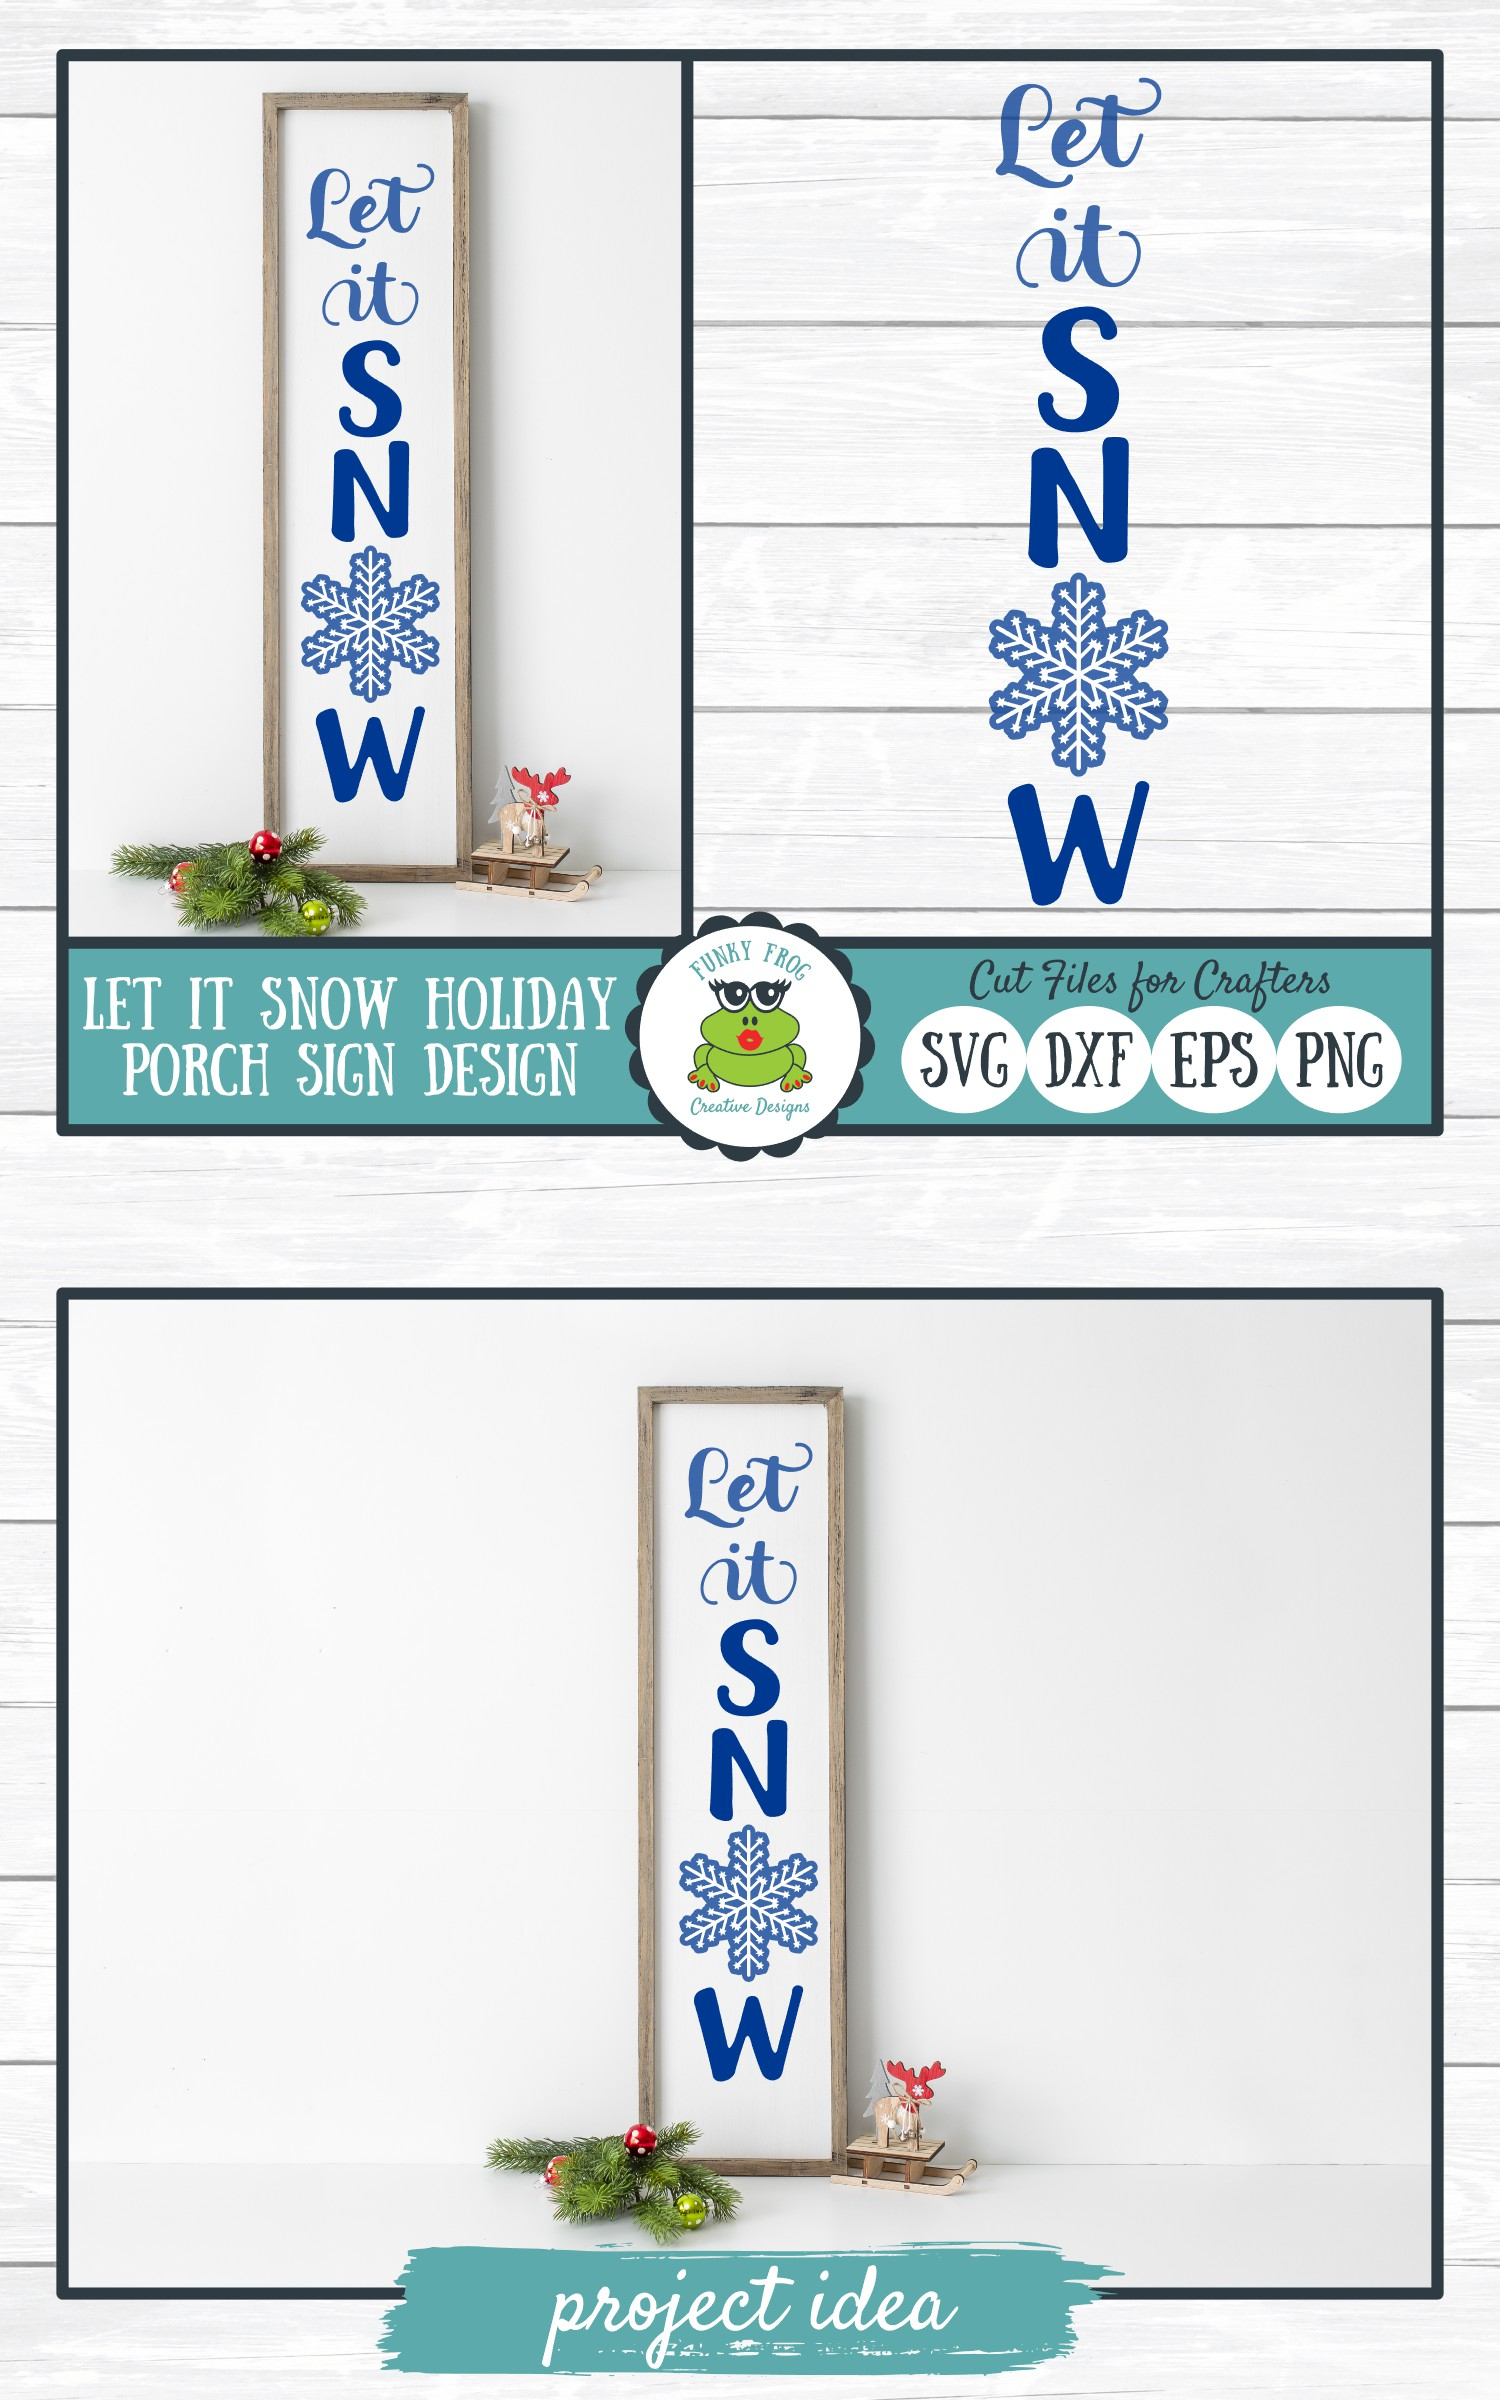 Let It Snow Holiday Porch Sign Design - Christmas SVG example image 4